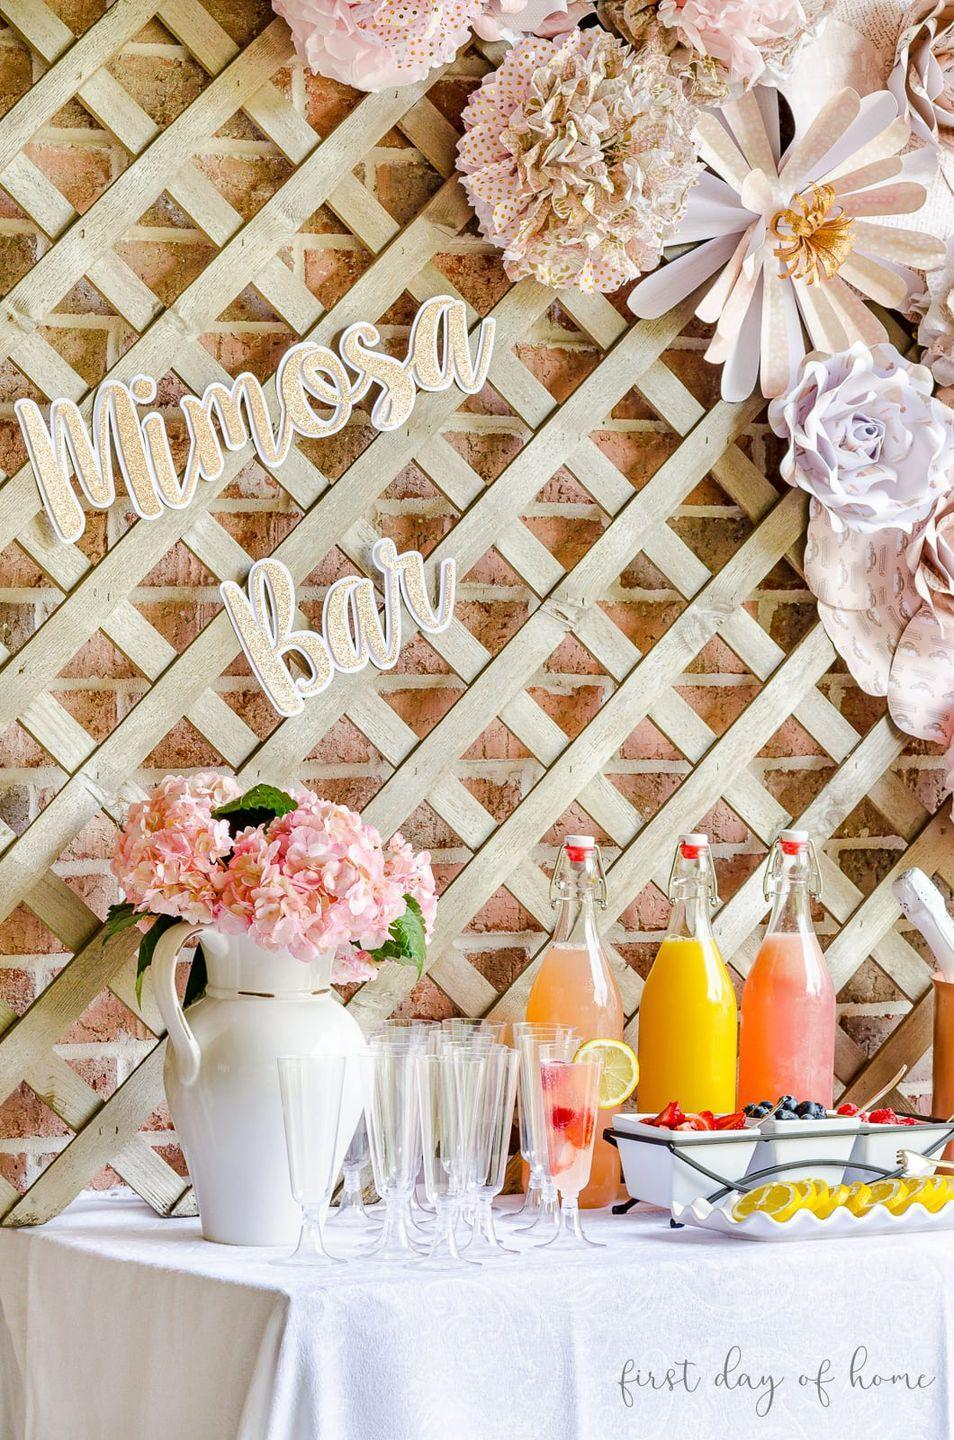 """<p>Not feeling a bar cart? Use a spare table to really spread out your mimosa-making station. Add a white table cloth and vase full of flowers for a chic touch. If you want to go all out, add a glittery sign that lets folks know where the mimosa bar is at.</p><p>See more at <a href=""""https://www.firstdayofhome.com/mimosa-bar-ideas/"""" rel=""""nofollow noopener"""" target=""""_blank"""" data-ylk=""""slk:First Day of Home"""" class=""""link rapid-noclick-resp"""">First Day of Home</a>.</p>"""